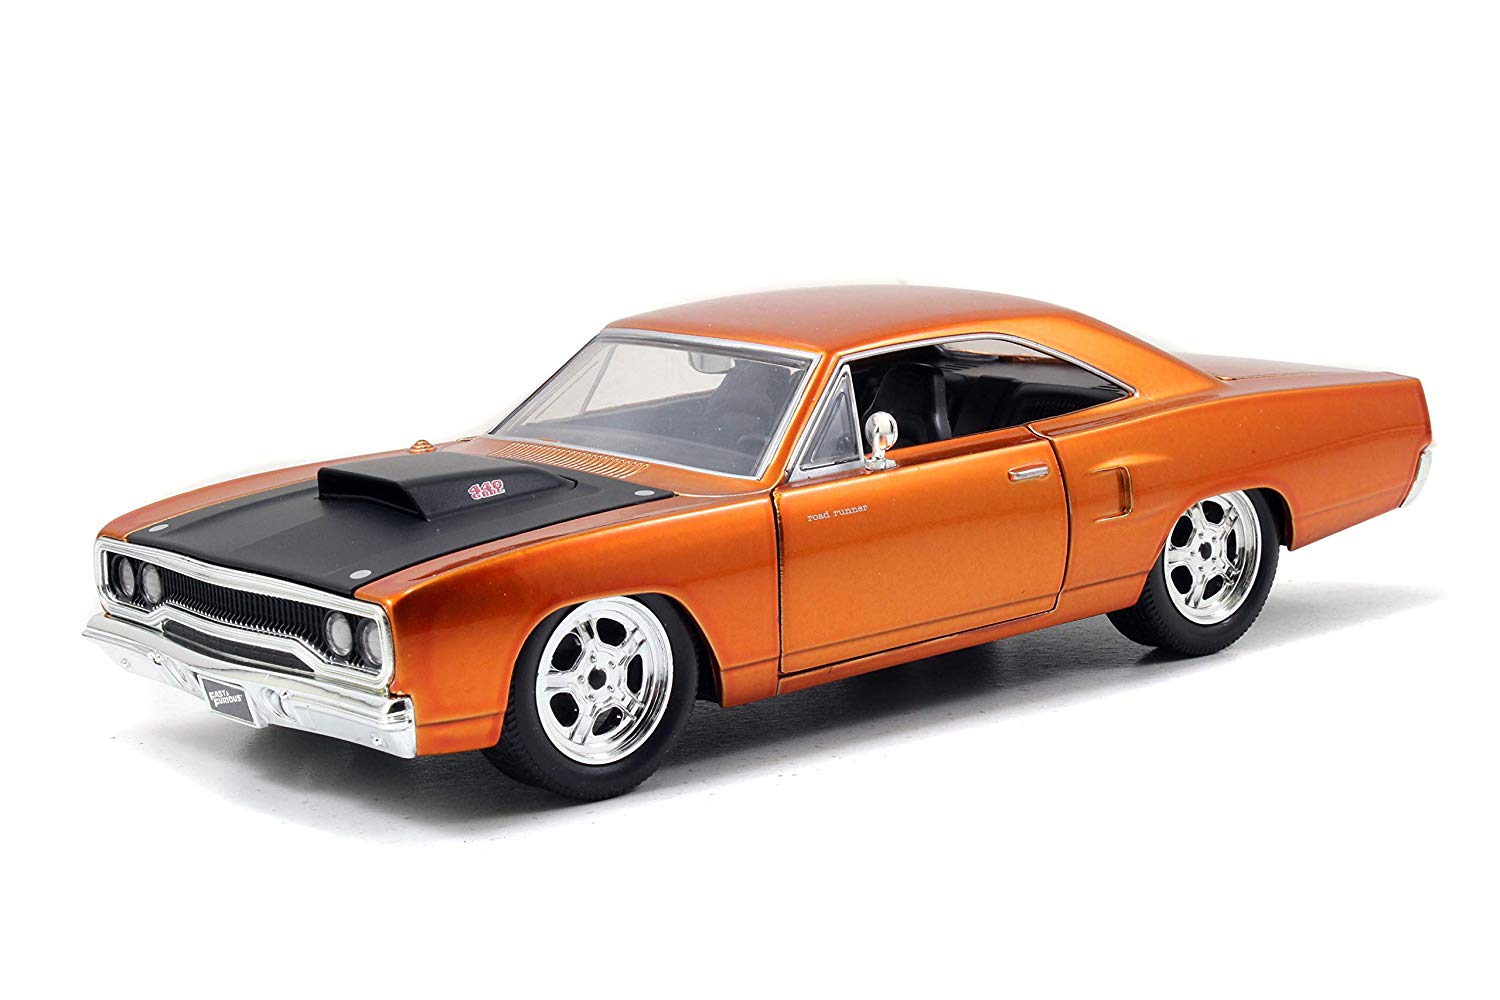 Форсаж - Плимут Раннер (Fast and Furious Diecast Vehicle - Plymouth Road Runner)